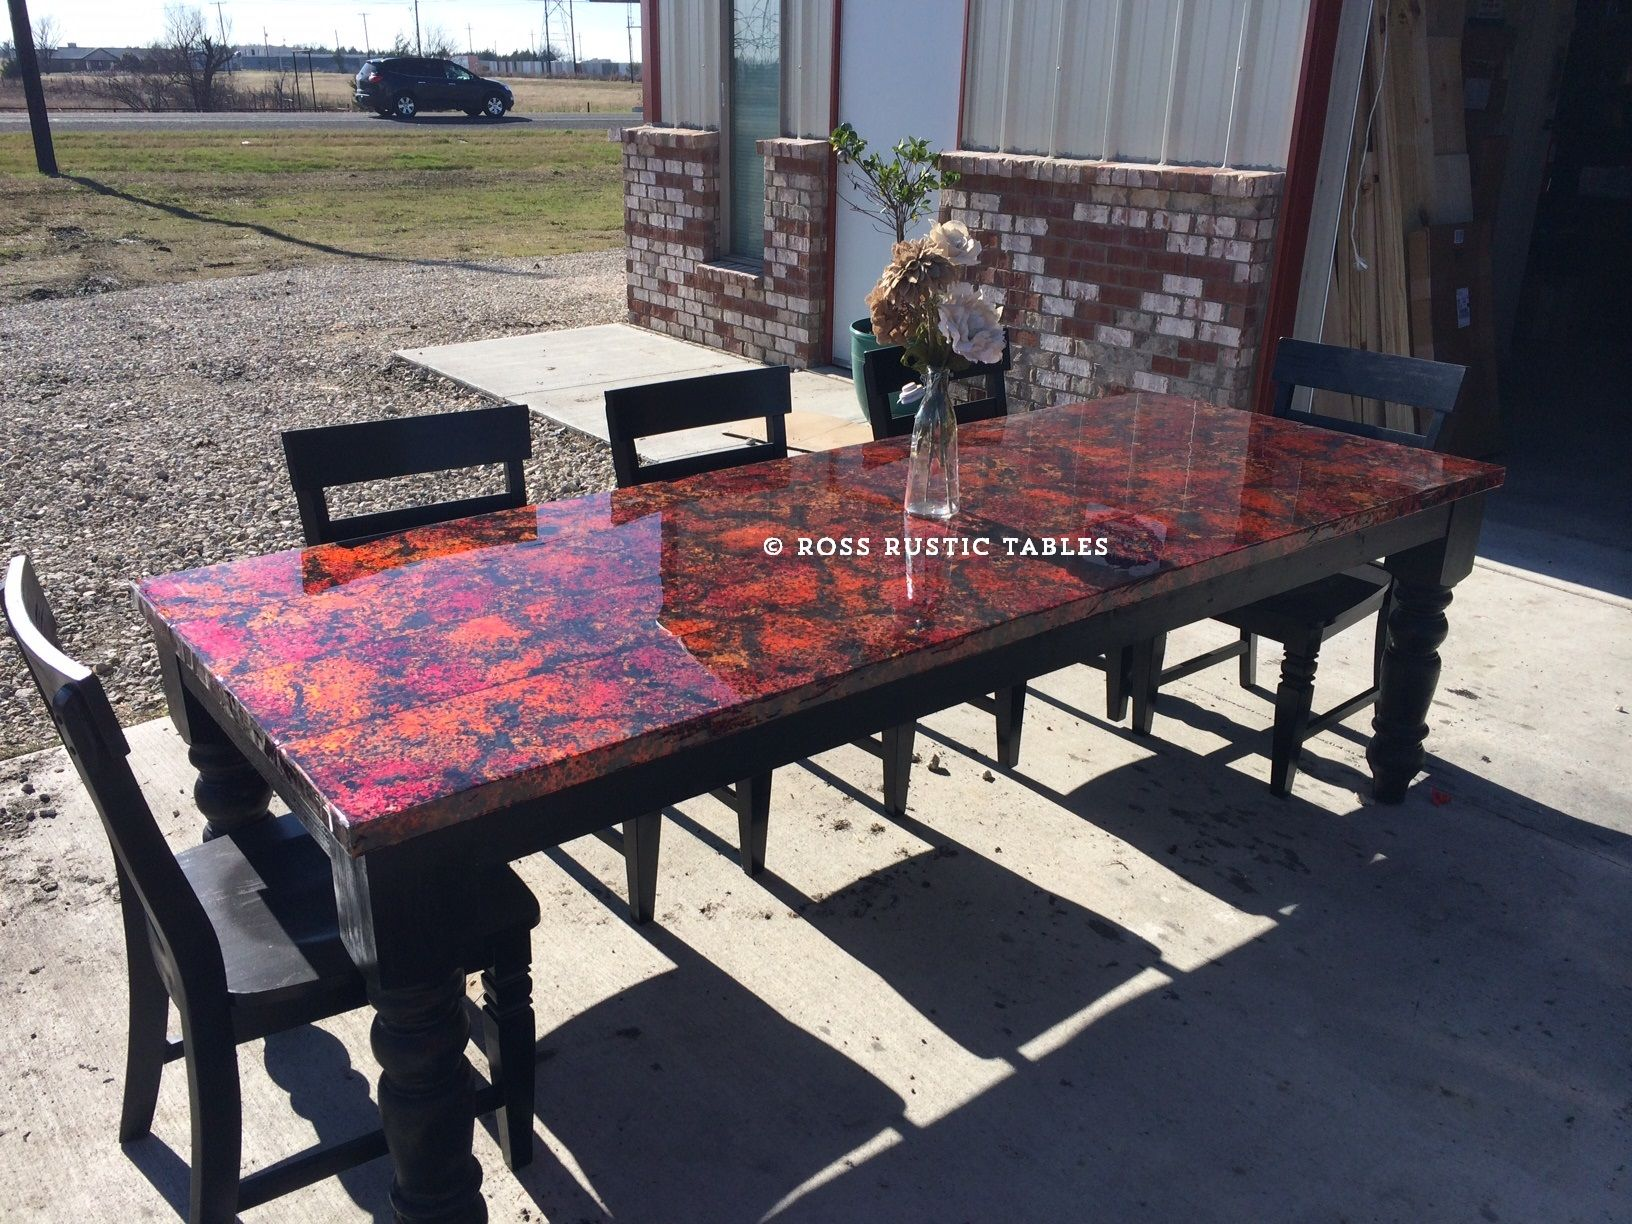 Red Copper Table From Ross Rustic Tables Solid Sheet Of Copper On Top With  A Coating Of Epoxy To Protect The Piece. Check Out All The Copper Choices  And ...